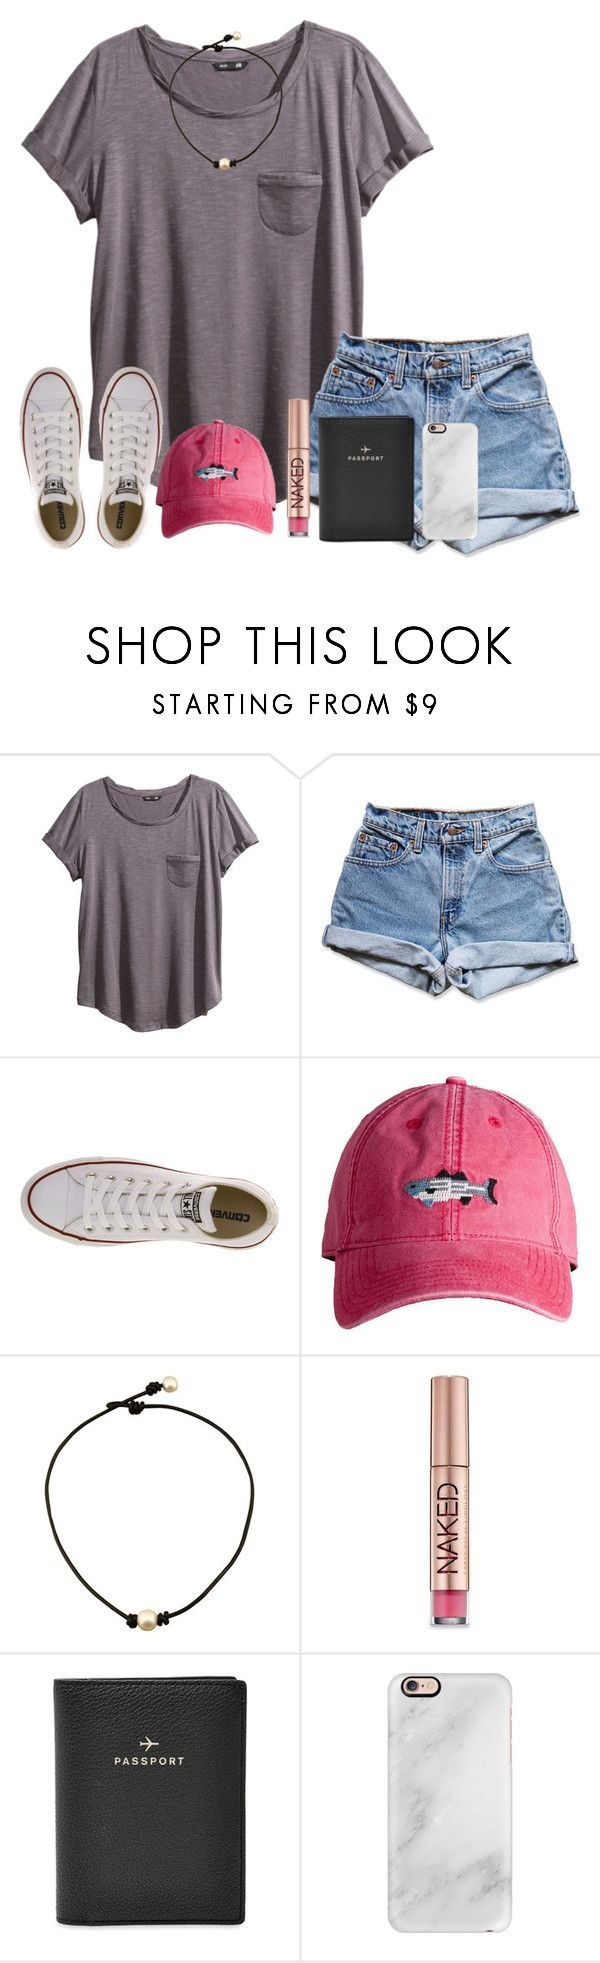 Always stay humble and kind. by rachelrae002 on Polyvore featuring H&M, Levi's, Converse, FOSSIL, Casetify and Urban Decay